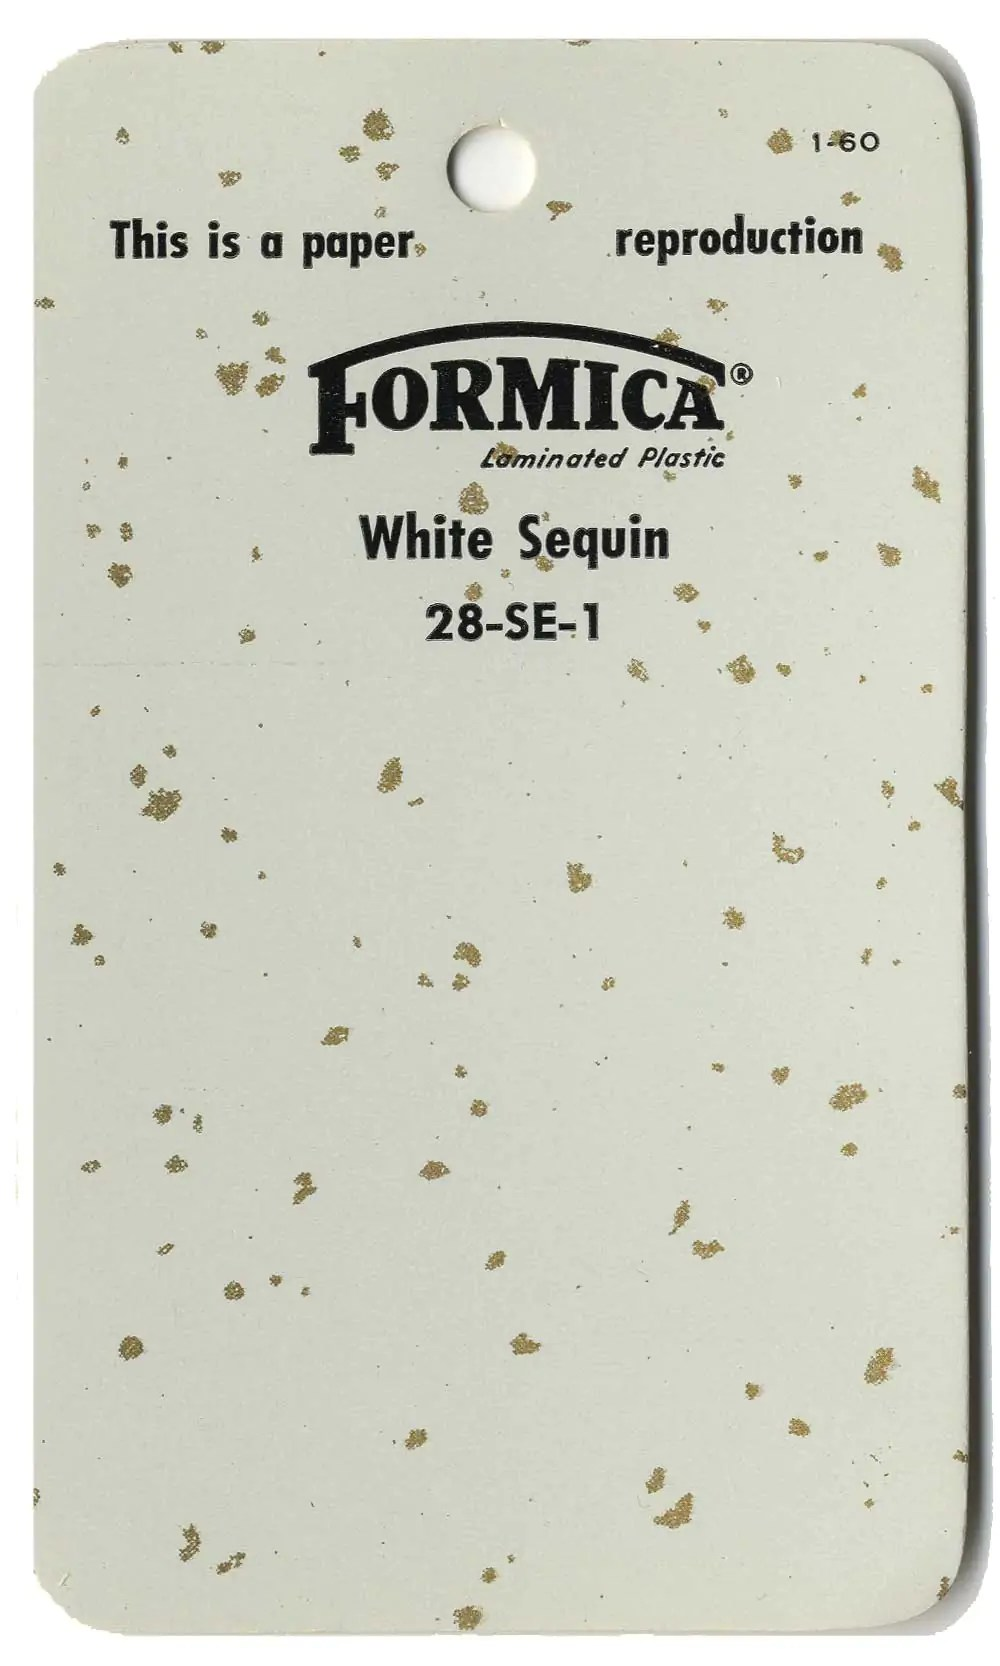 42 Historic Designs Of Glitter Laminate From Formica Textolite Wilsonart Nevamar And More